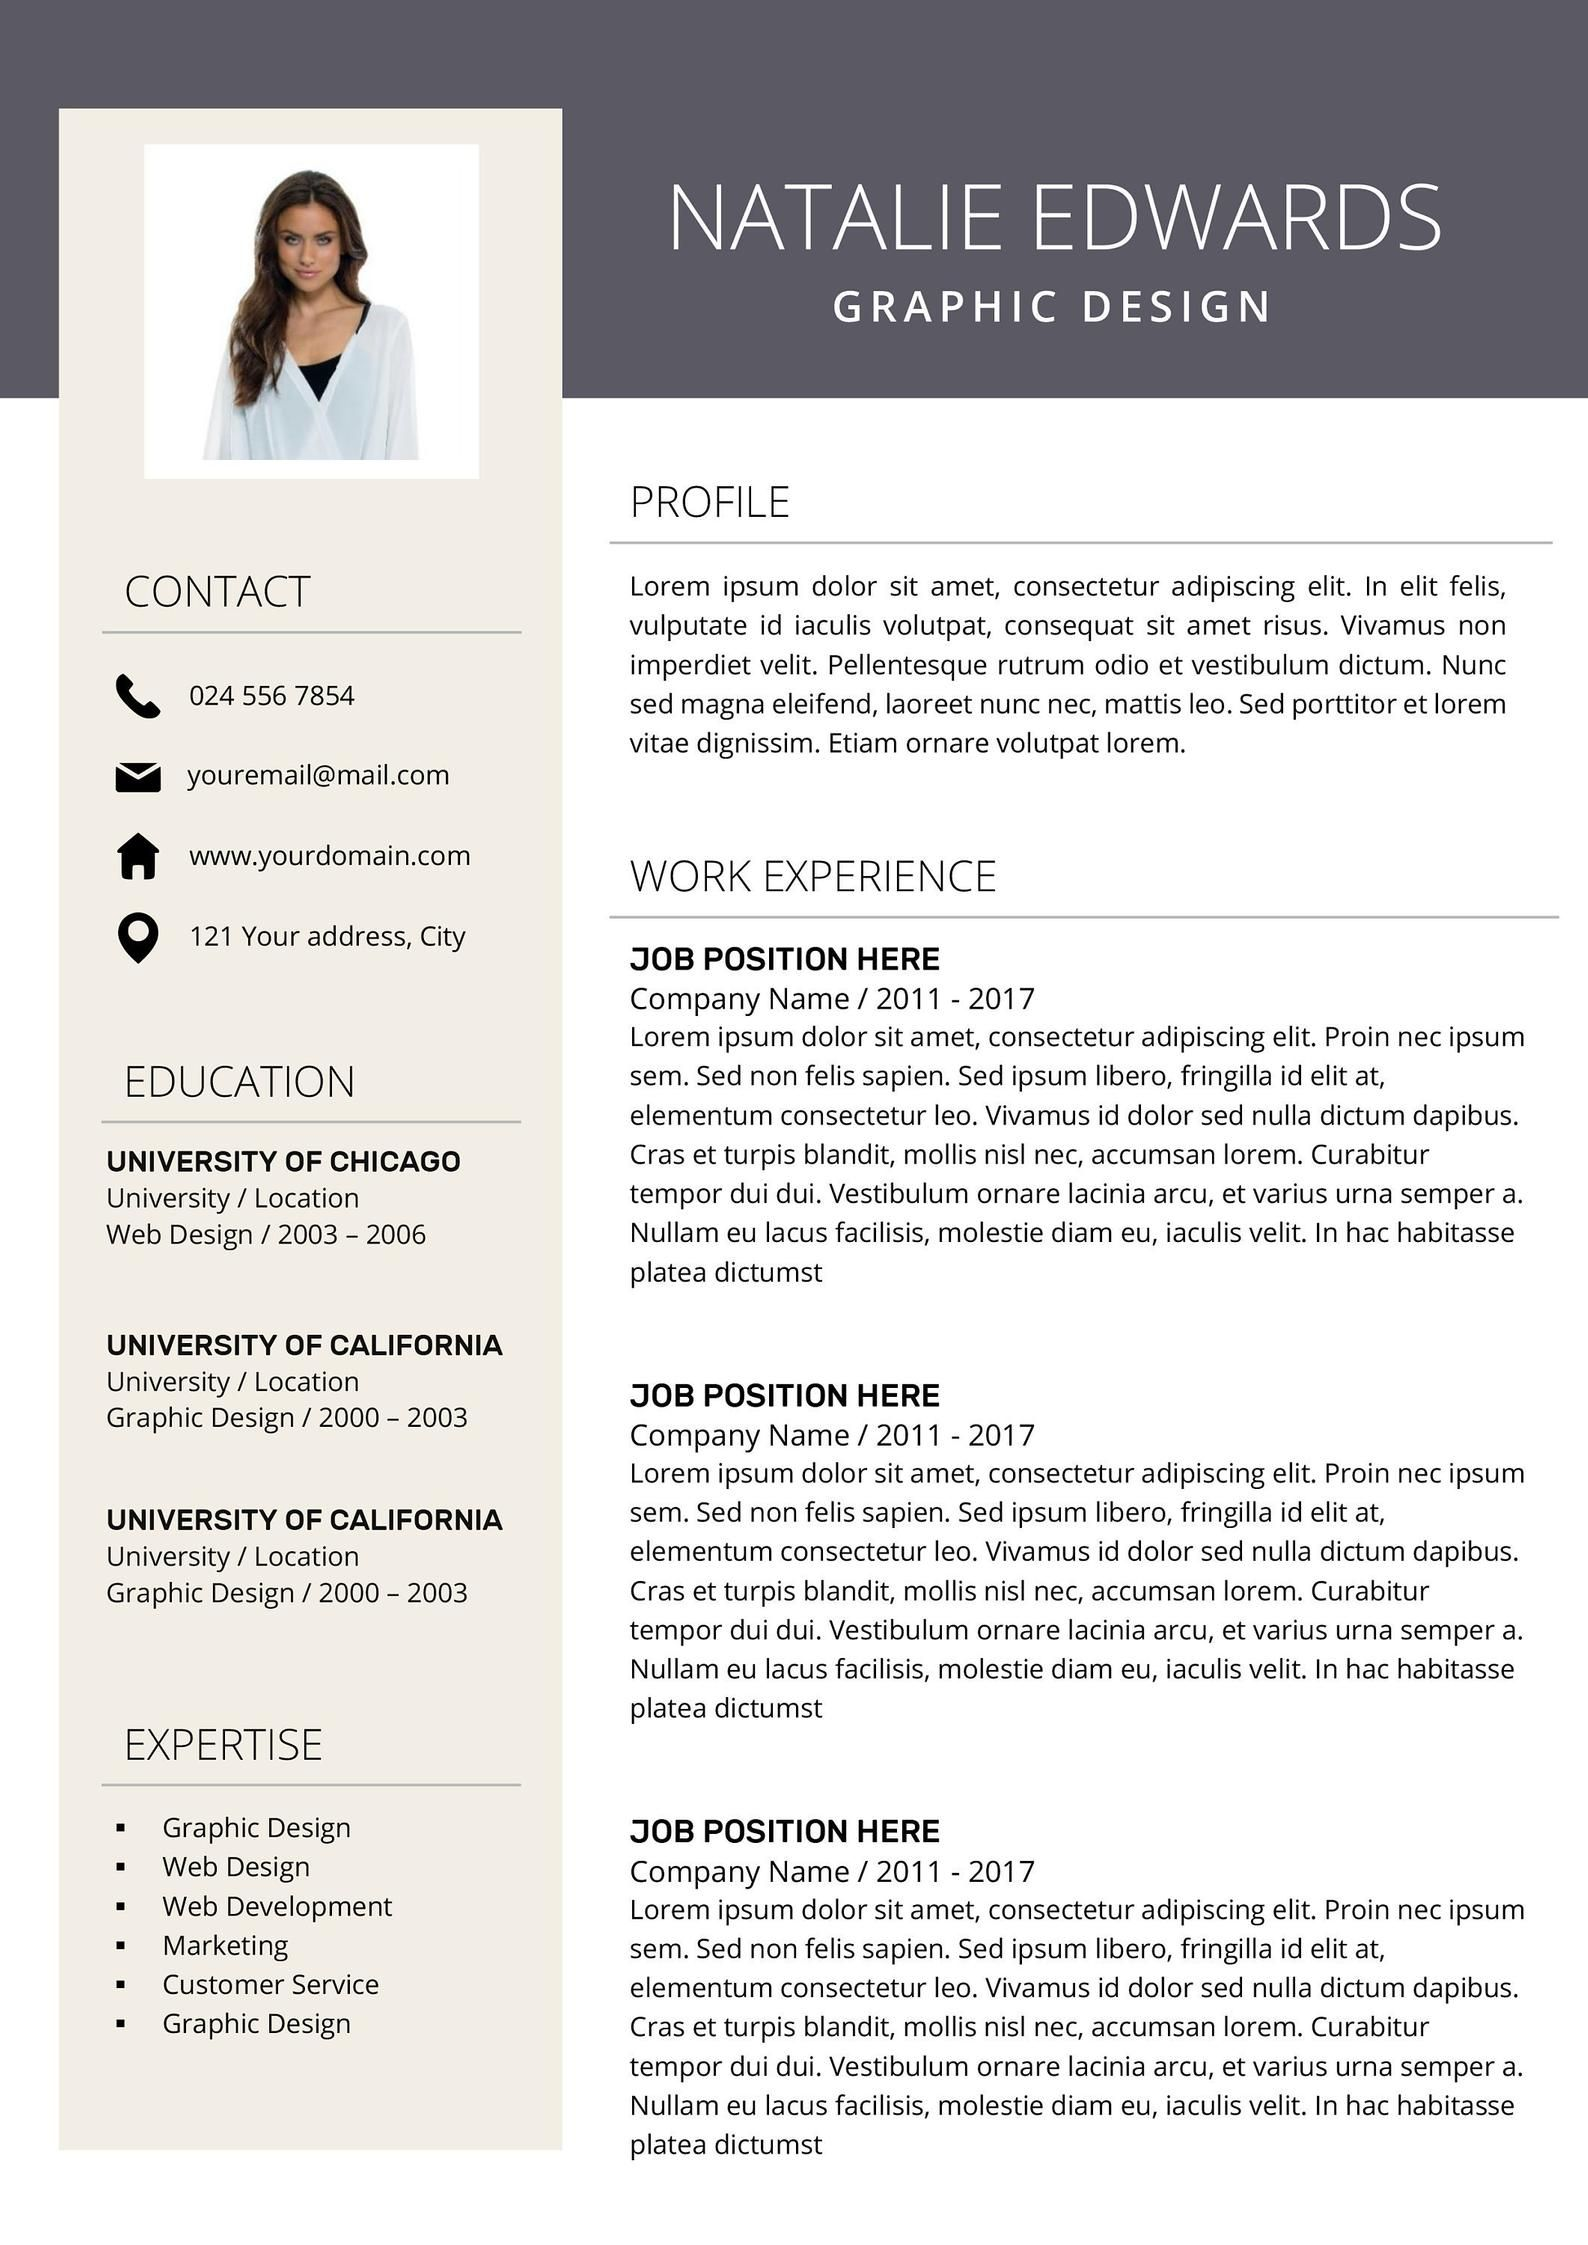 creative resume template cv for ms word and professional modern design instant in Resume Creative Resume Profile